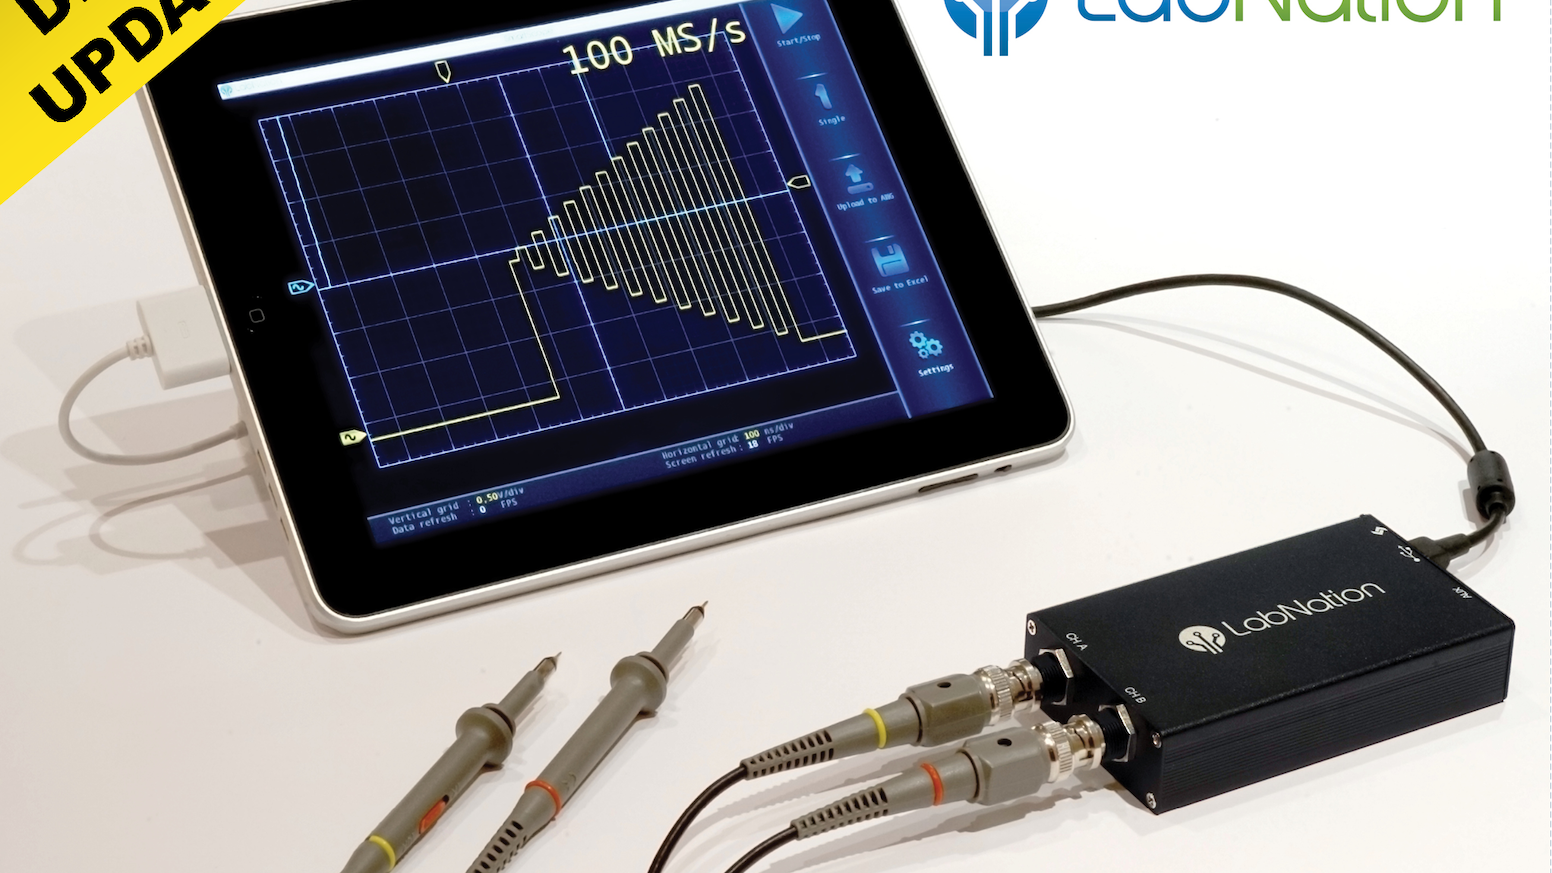 SmartScope - Reinventing the oscilloscope by LabNation